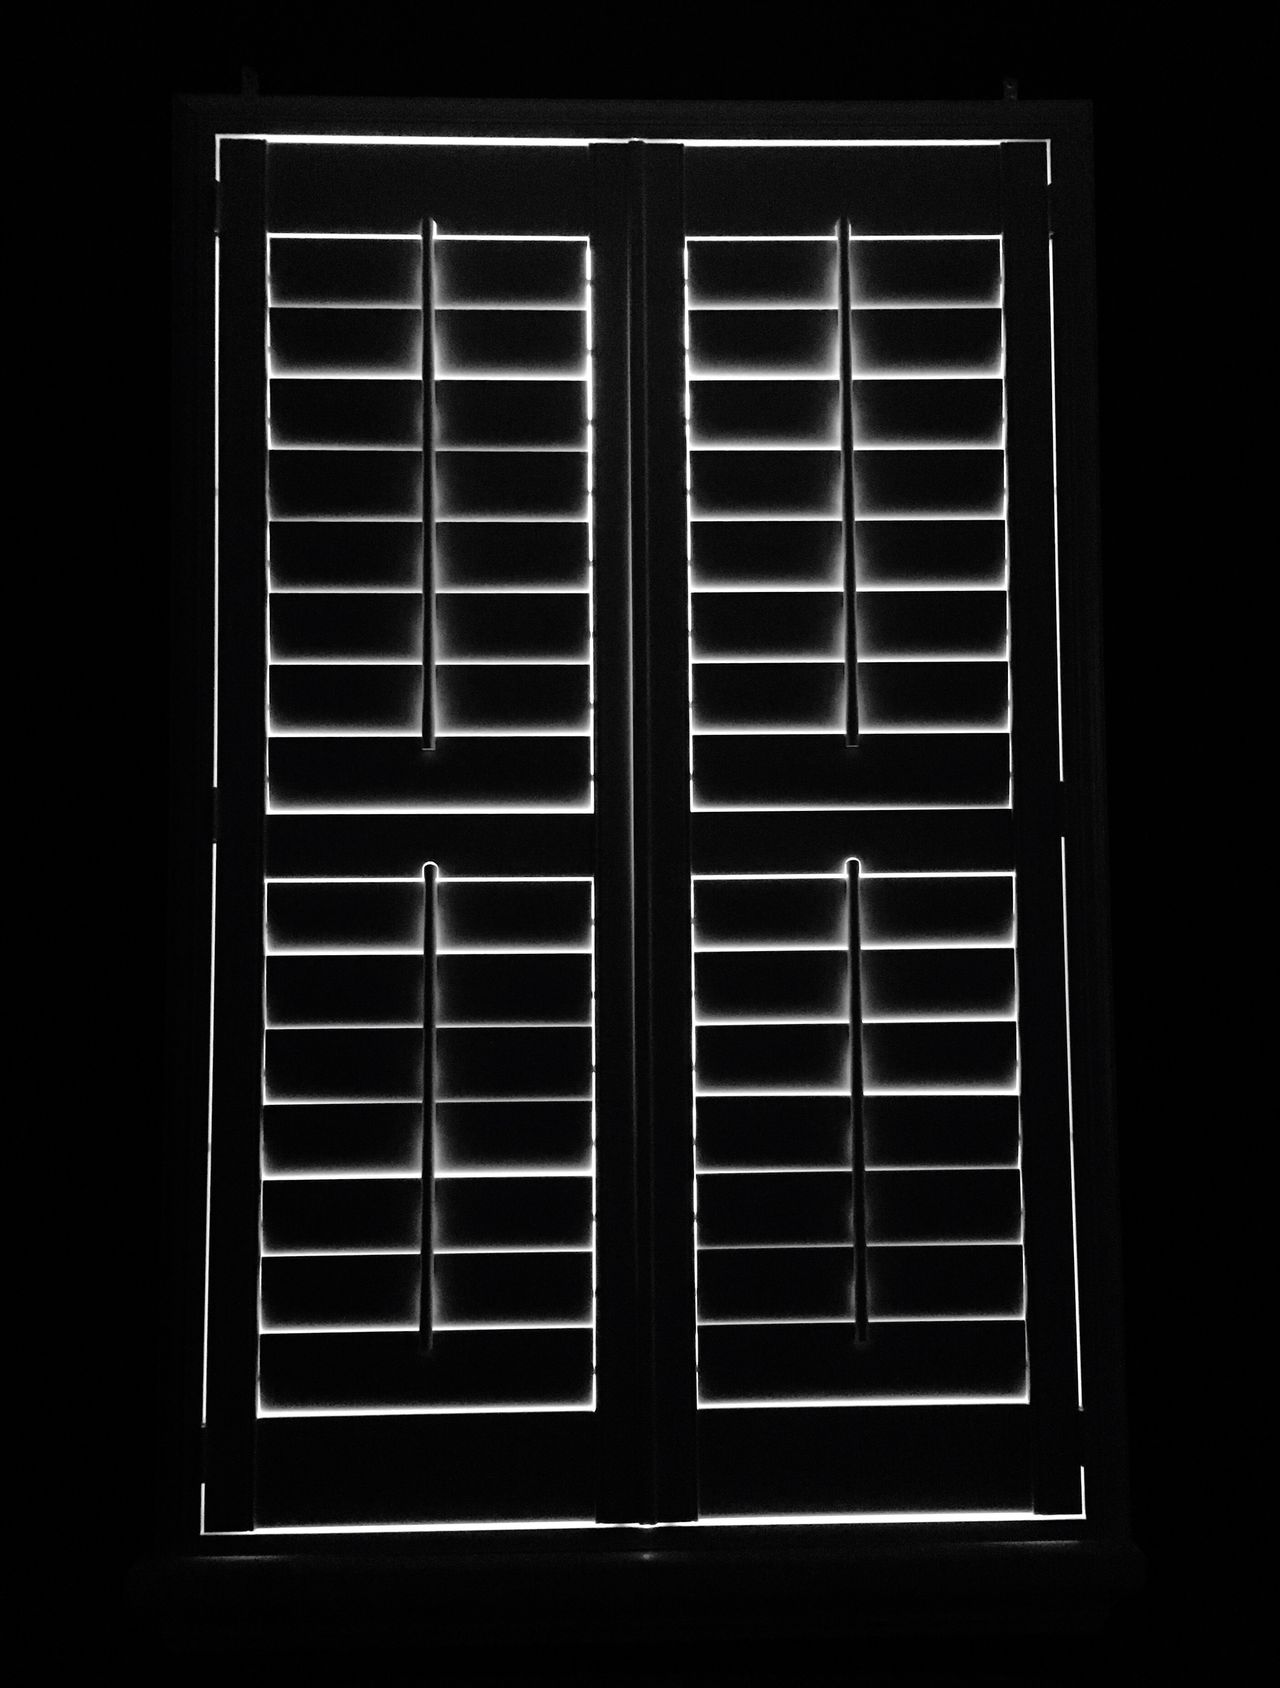 Window Pattern No People Black Background White light Shadow grid Grids design Aesthetic Architecture Backgrounds